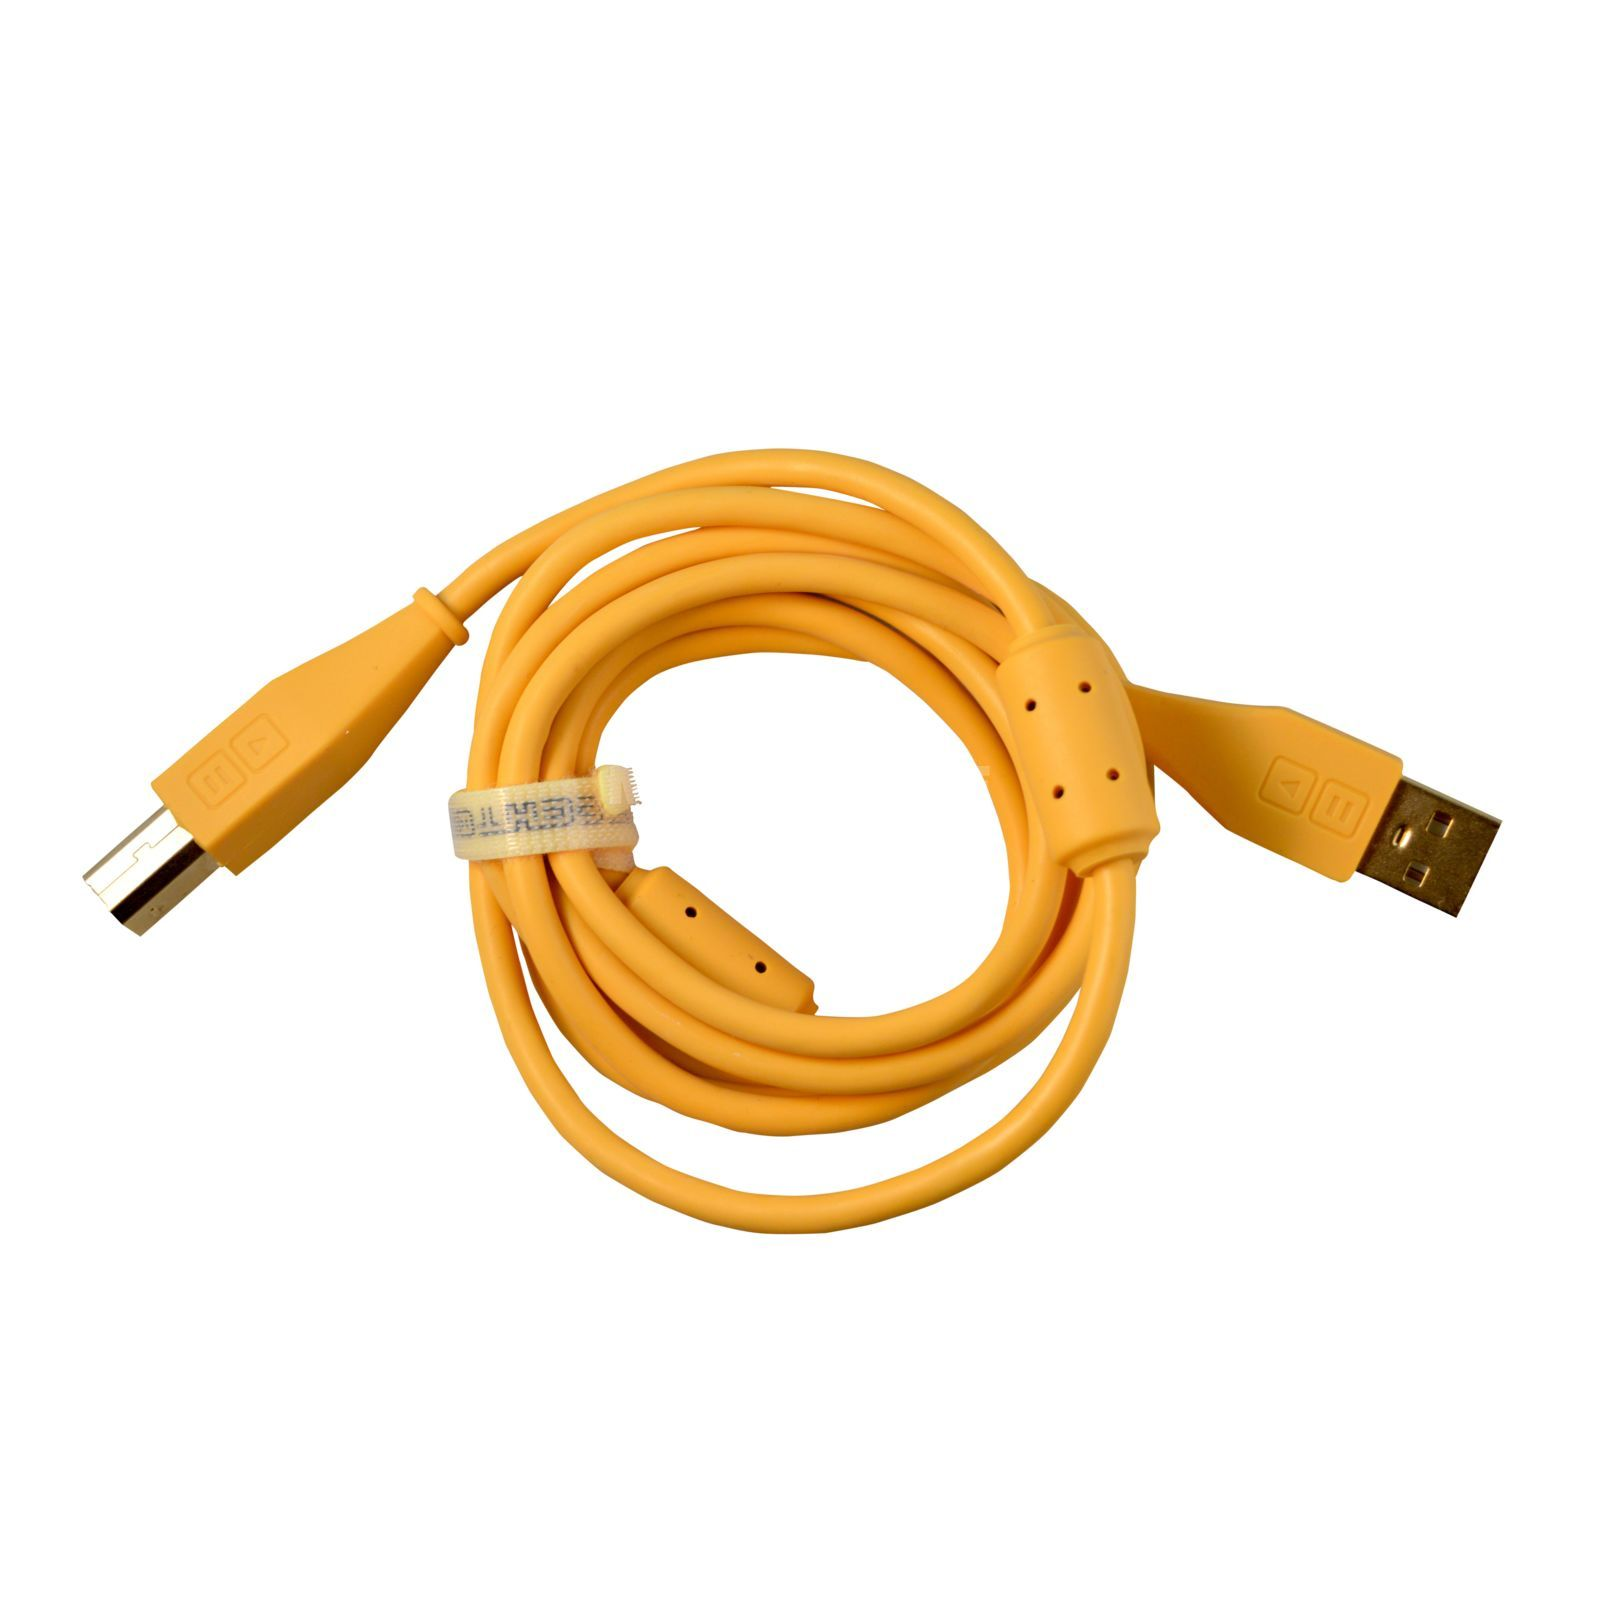 DJ TECHTOOLS DJTT USB Chroma Cable Orange 1.5m, straight Product Image